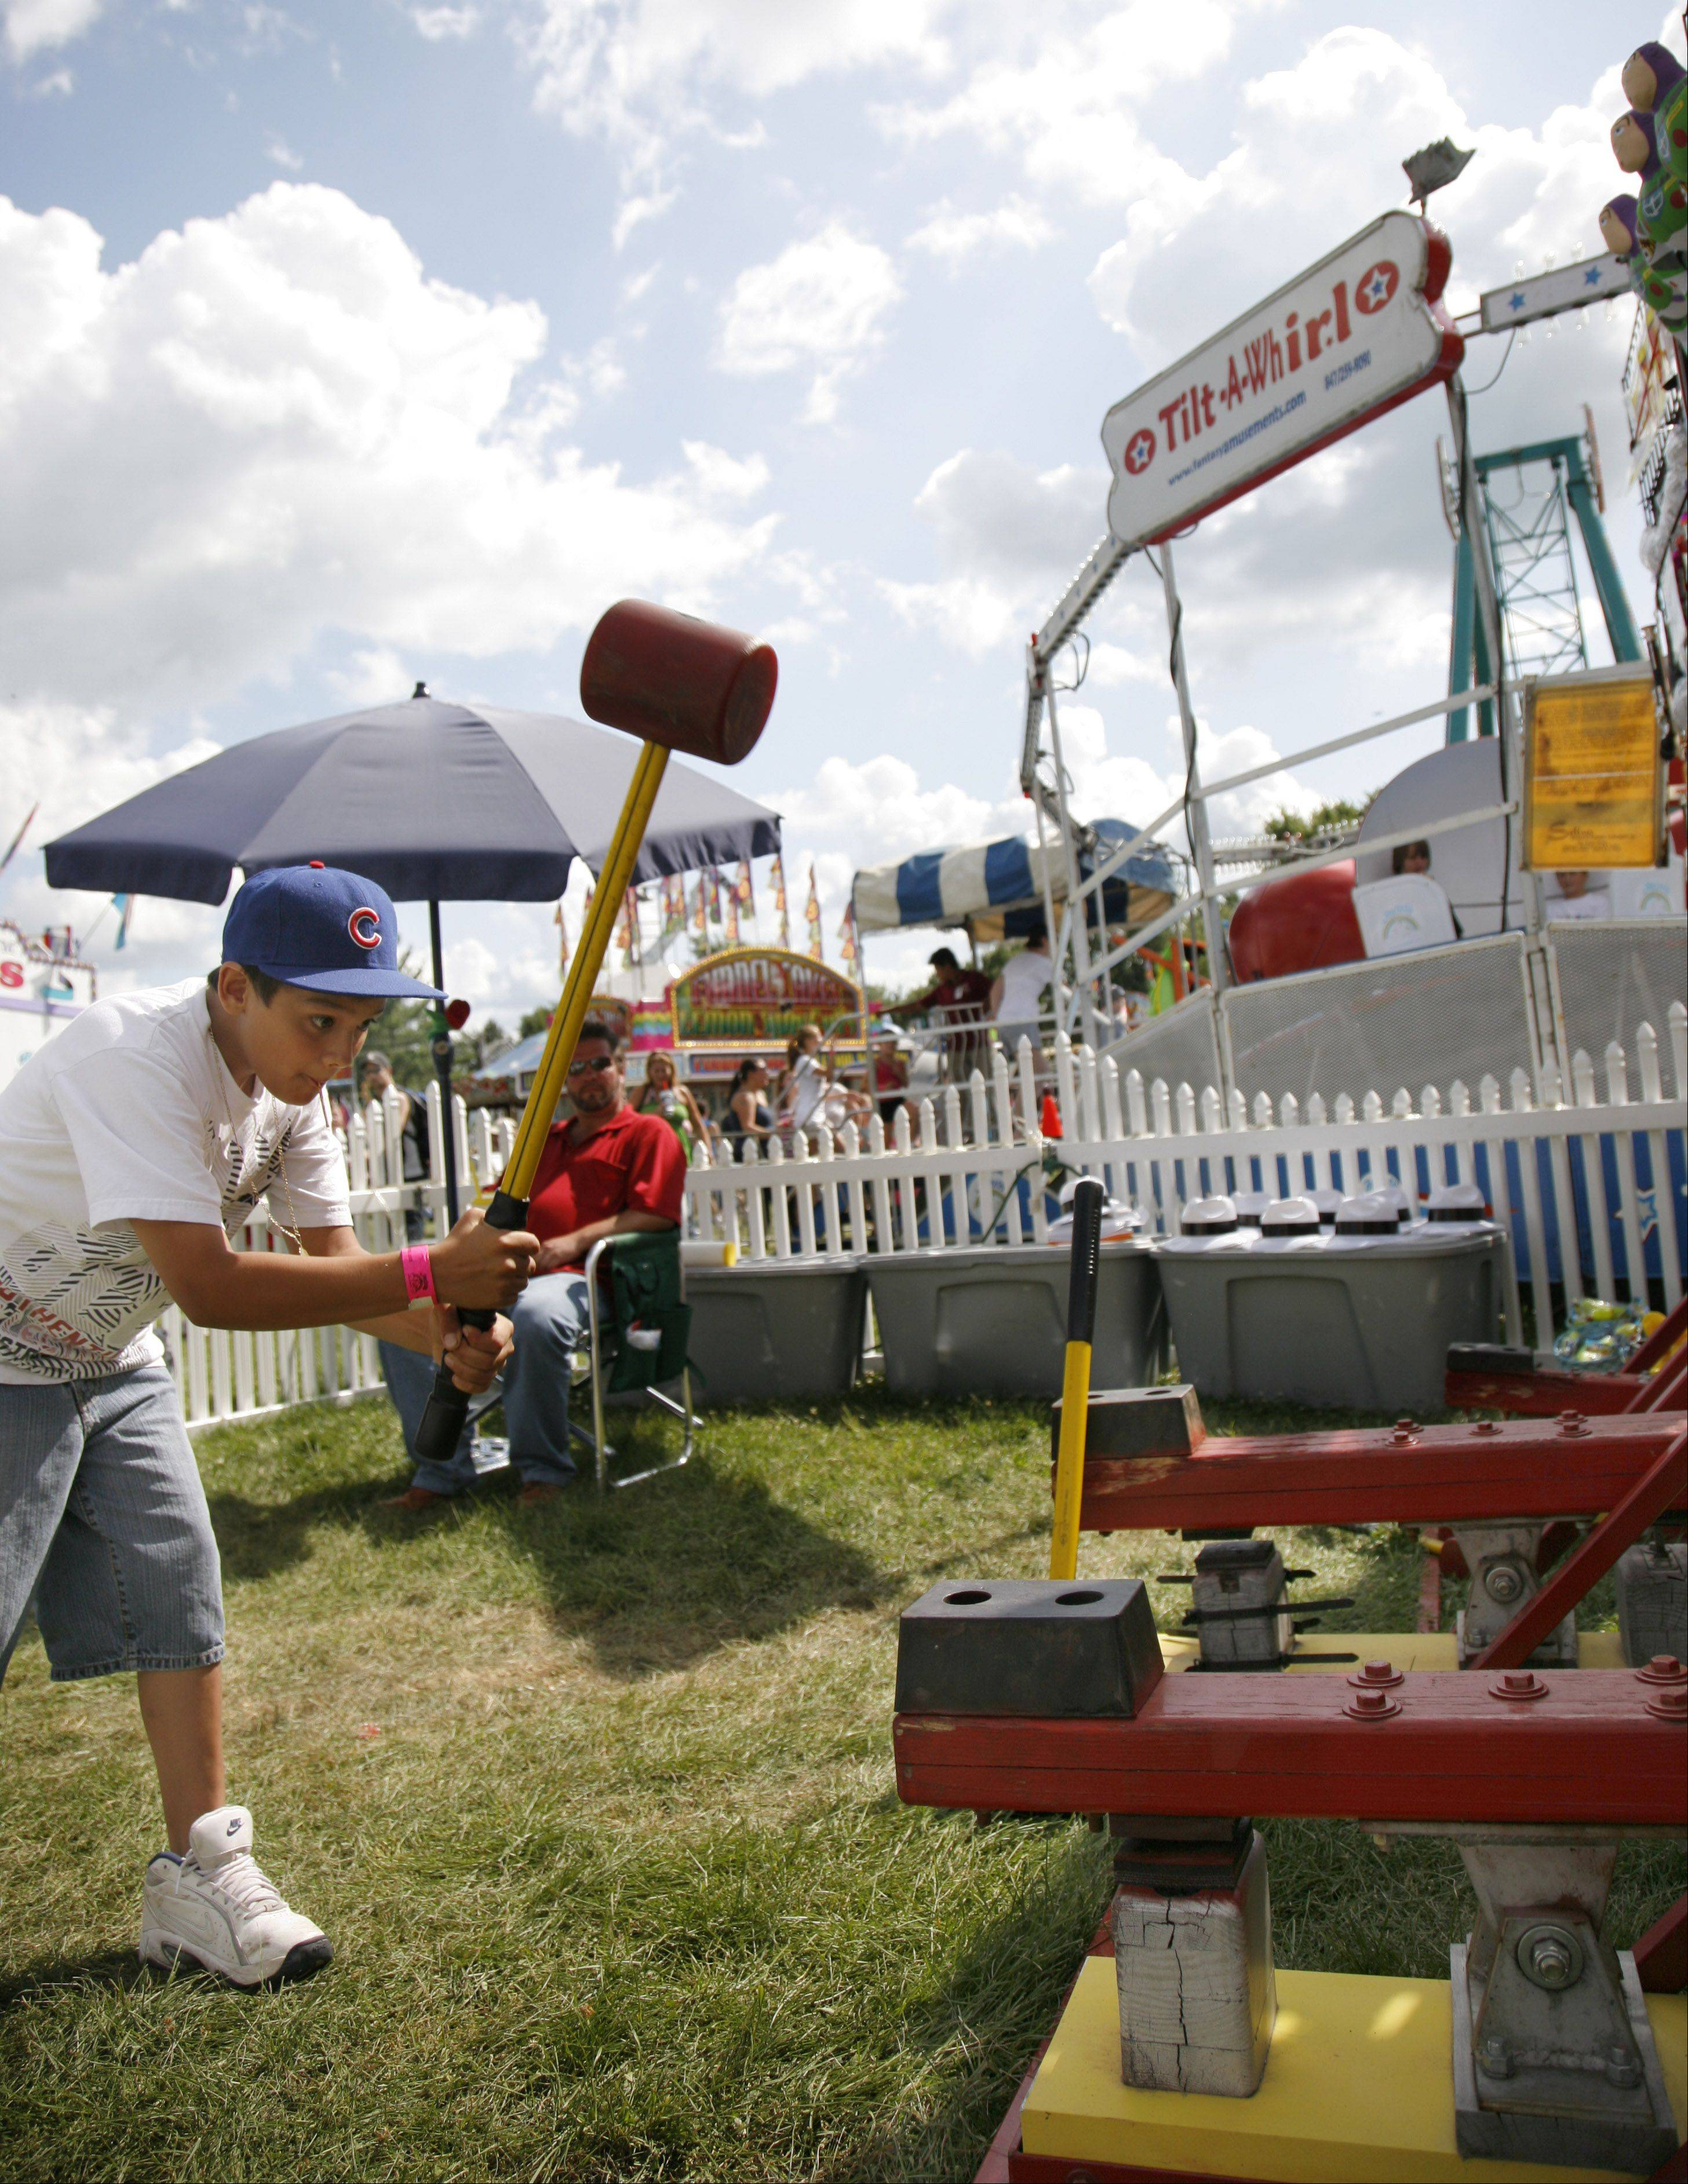 Ivan Cadema, 11, of Plano takes a whack at a carnival game during a previous Sugar Grove Corn Boil festival.